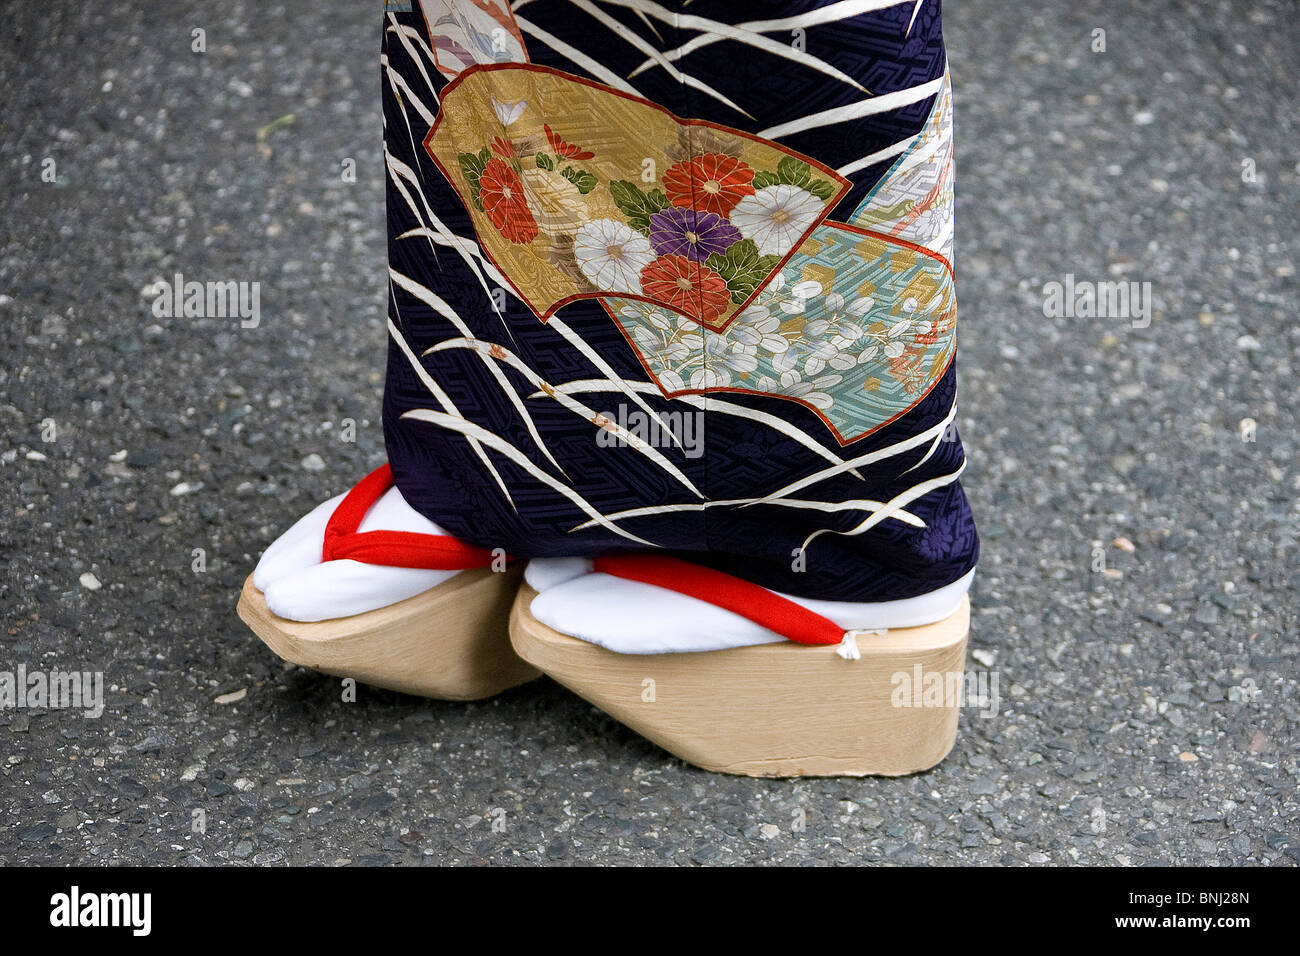 Japan Asia Tokyo City Town City Geisha Culture Tradition Geta